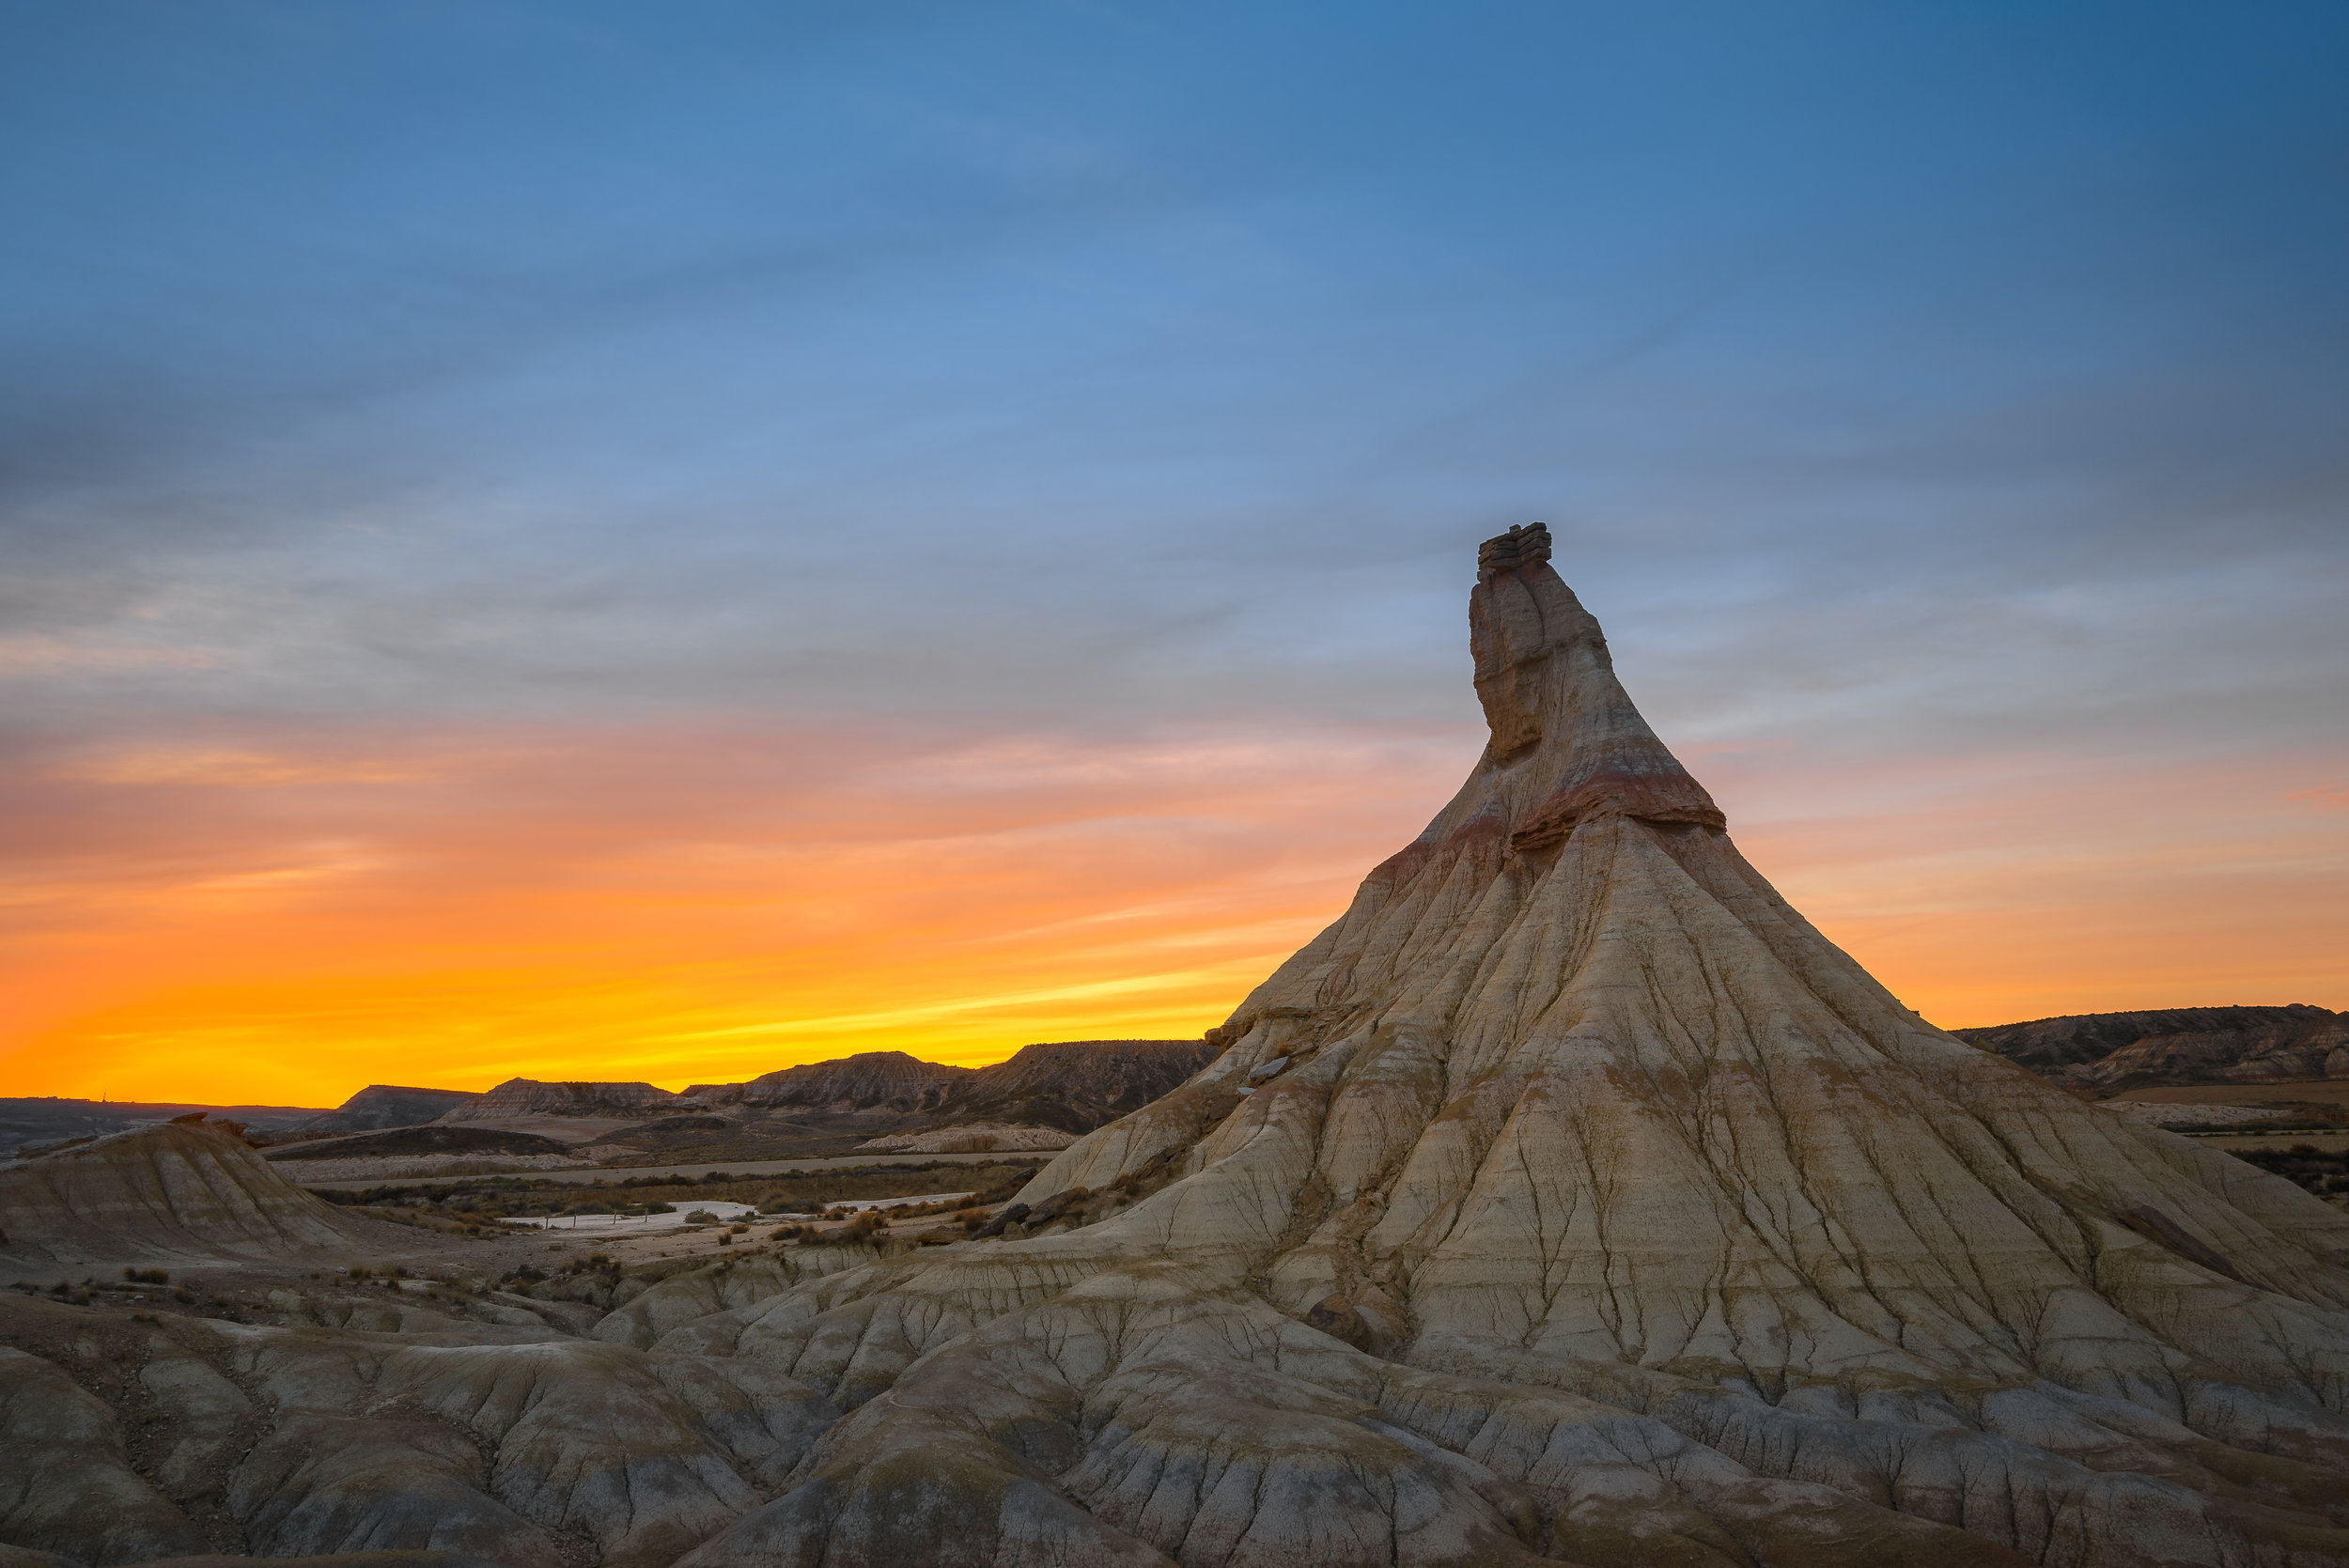 PICTURED:  Castildetierra rock at Bardenas Reales biosphere reserve, Navarre, Spain